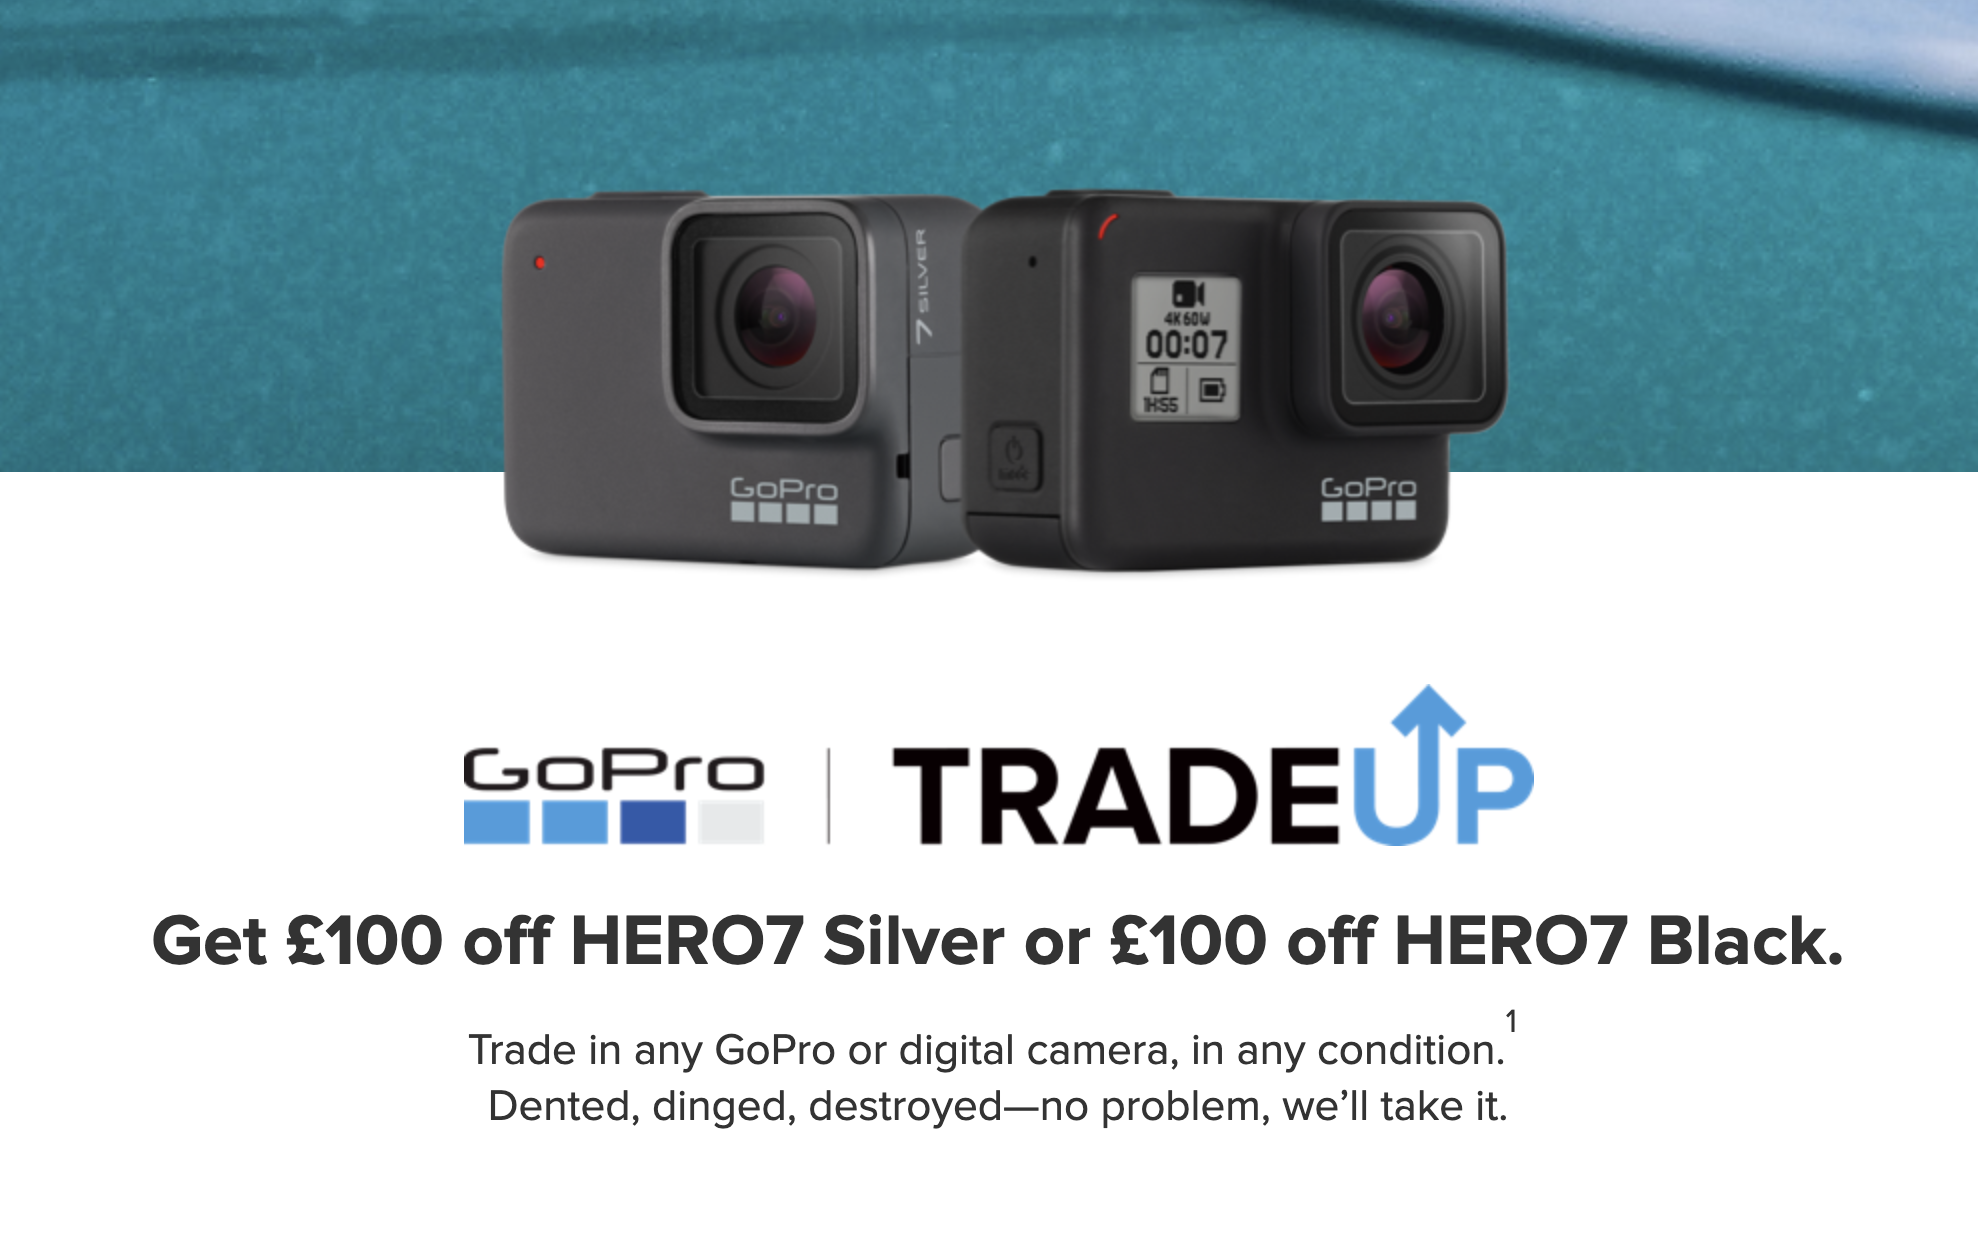 GoPro Get £100 off HERO7 Silver or HERO7 BlackWith Trade In